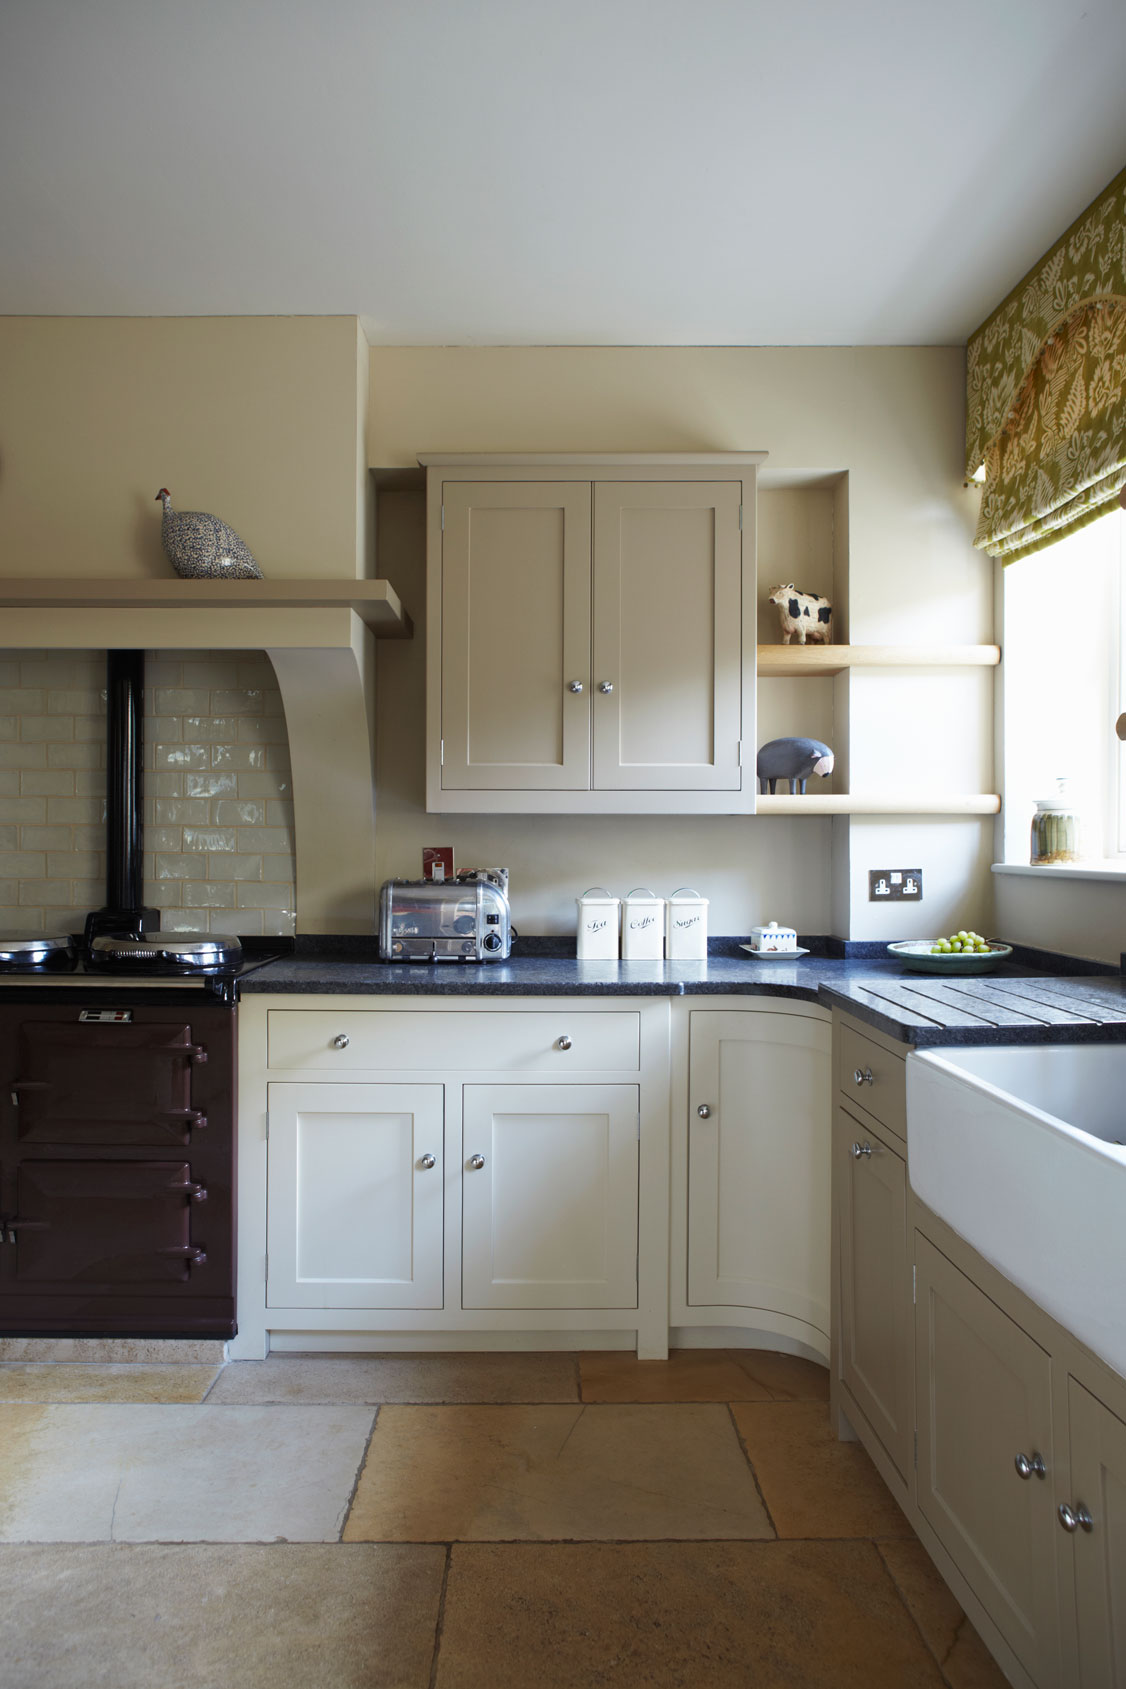 Farrow & Ball's paints are in great demand for traditional kitchens. But their emulsions do contain